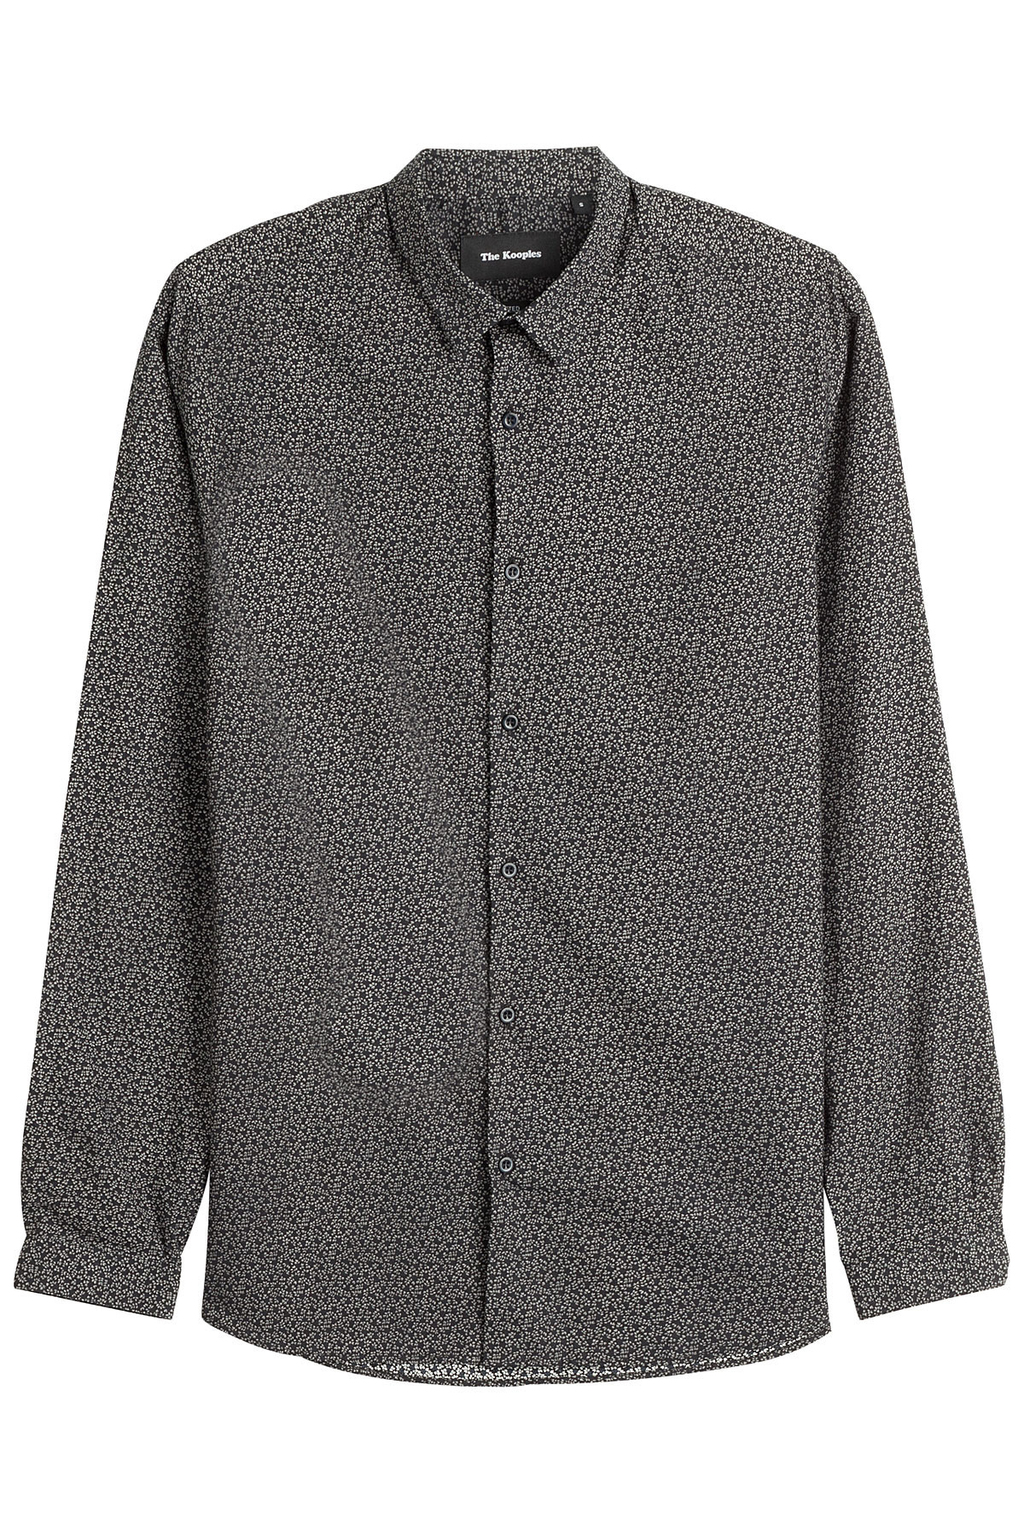 Printed Cotton Shirt - neckline: shirt collar/peter pan/zip with opening; style: shirt; predominant colour: charcoal; occasions: casual; length: standard; fibres: cotton - 100%; fit: body skimming; sleeve length: long sleeve; sleeve style: standard; texture group: cotton feel fabrics; pattern type: fabric; pattern size: standard; pattern: patterned/print; season: a/w 2016; wardrobe: highlight